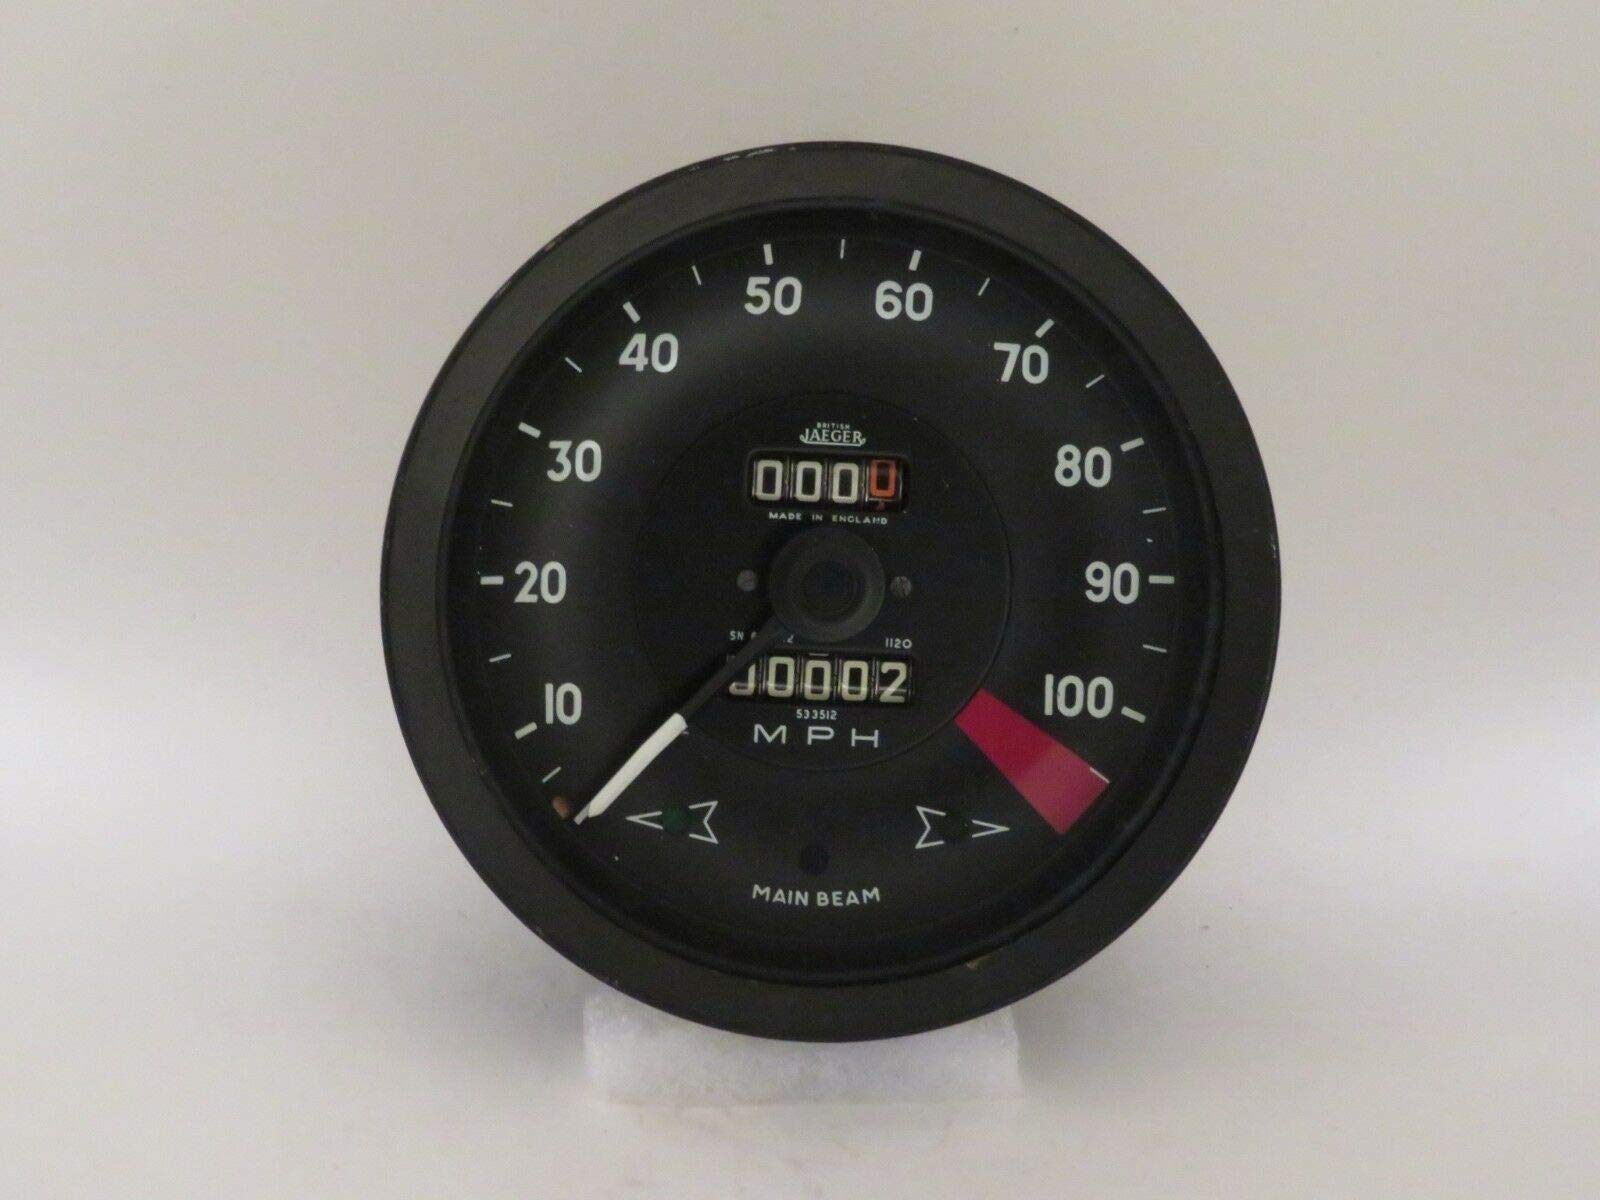 EPC Speedometer NOS Jaeger Brand Fits Rover P5 Saloon 3 Litre SN6131/012 by EPC